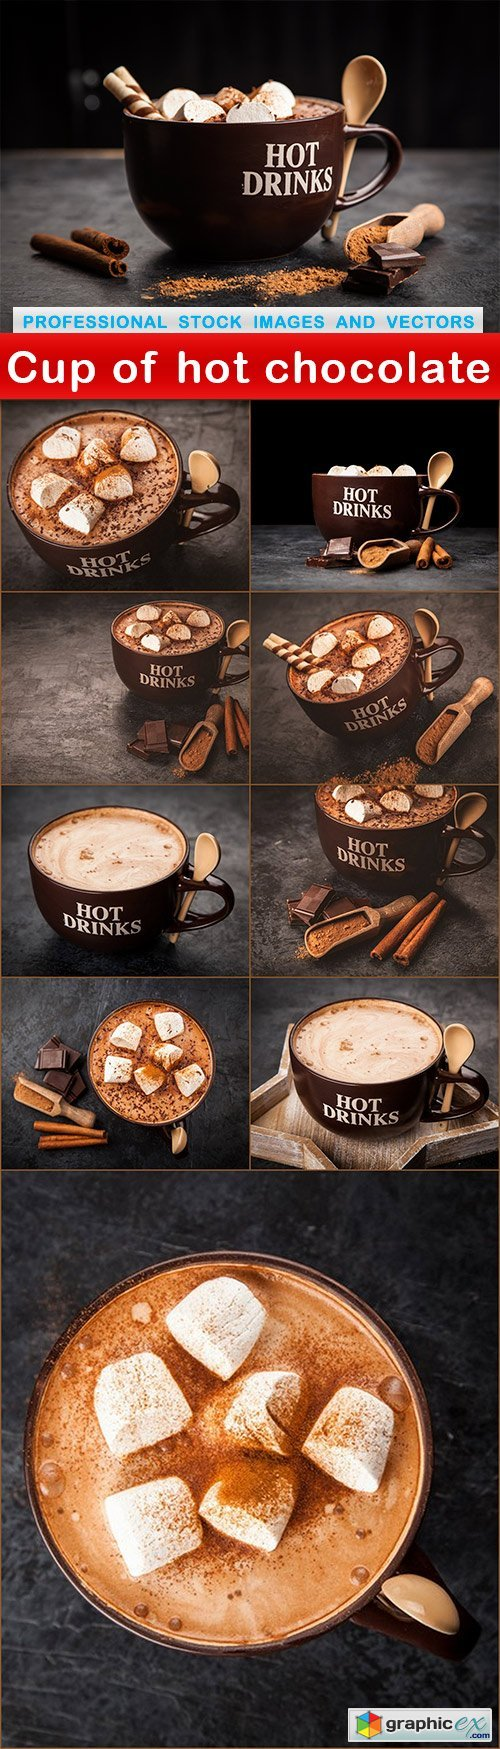 Cup of hot chocolate - 10 UHQ JPEG